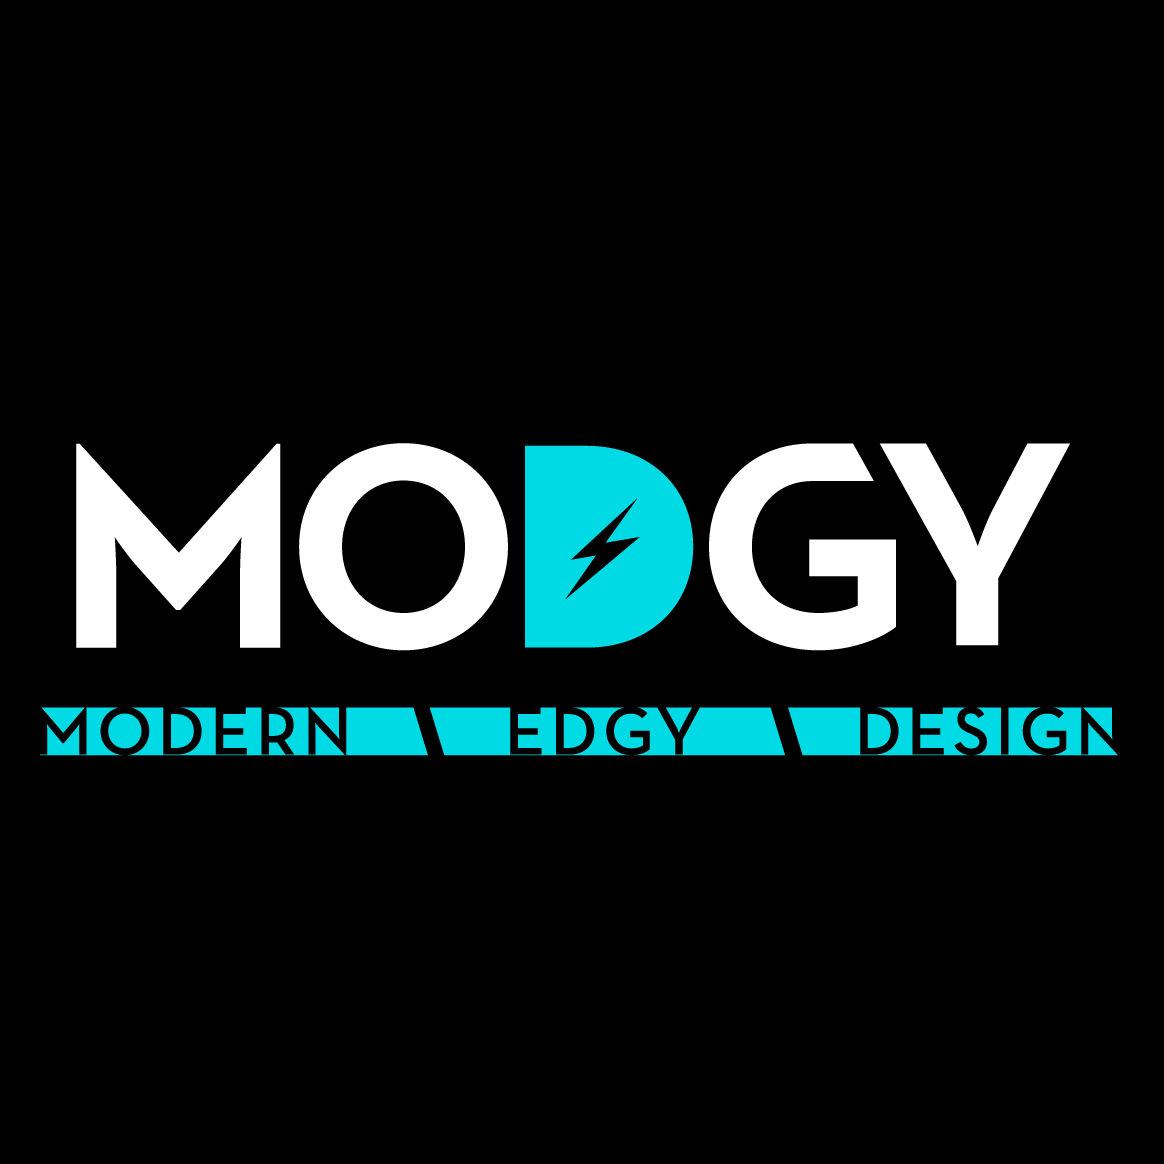 Modgy is Modern + Edgy Design